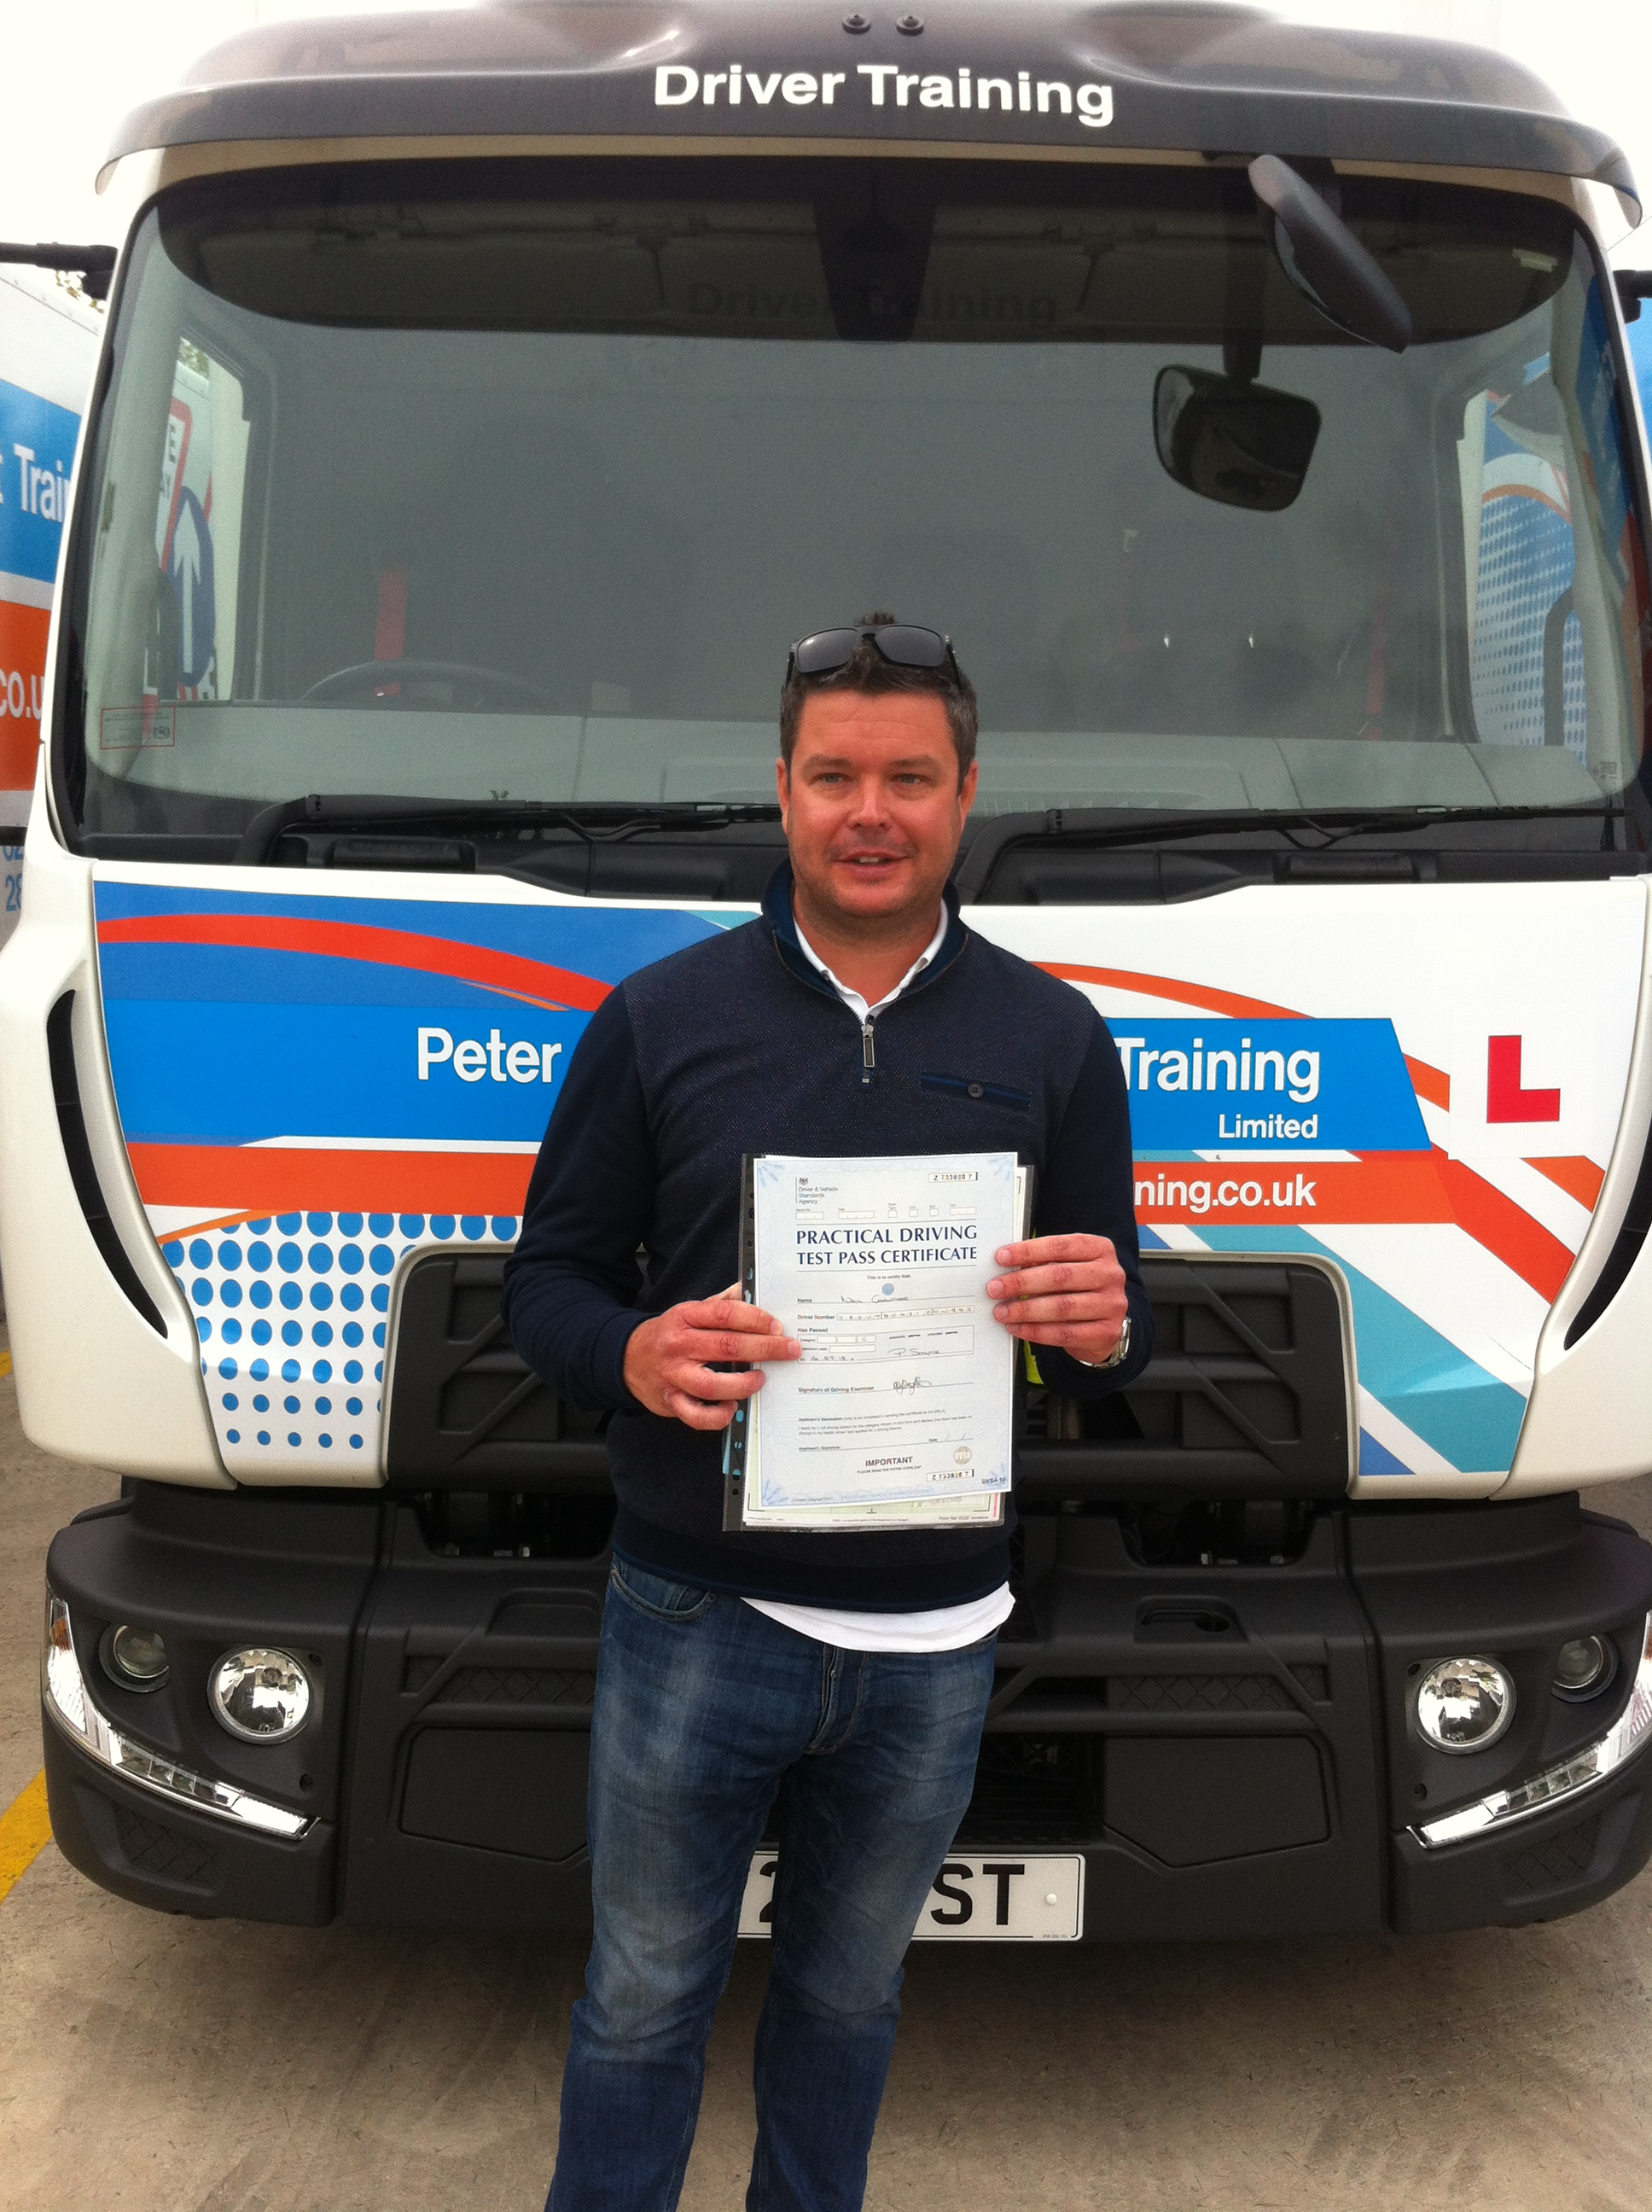 Neil Crowther from Derby PASSED CAT C with a CLEANSHEET#ipassedwithpstt